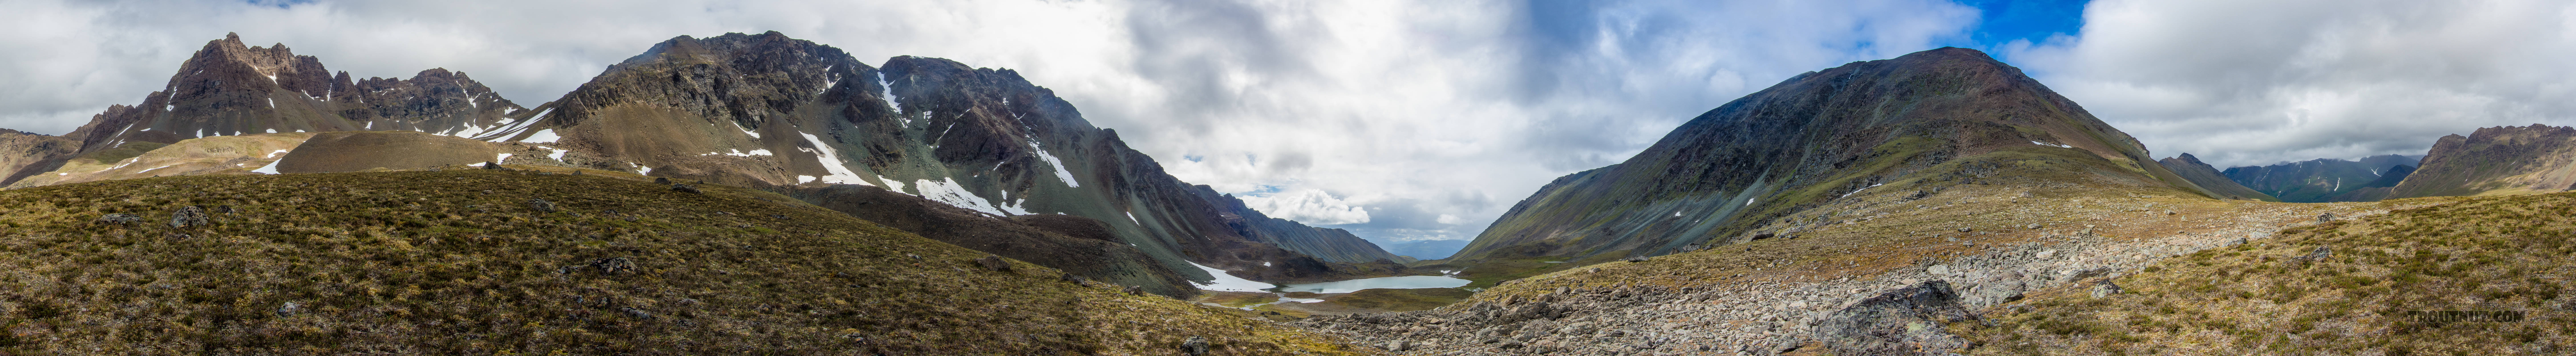 Pass at the top of Alpine Creek (panorama). This detailed 360 degree panorama is best viewed full-size. From Clearwater Mountains in Alaska.